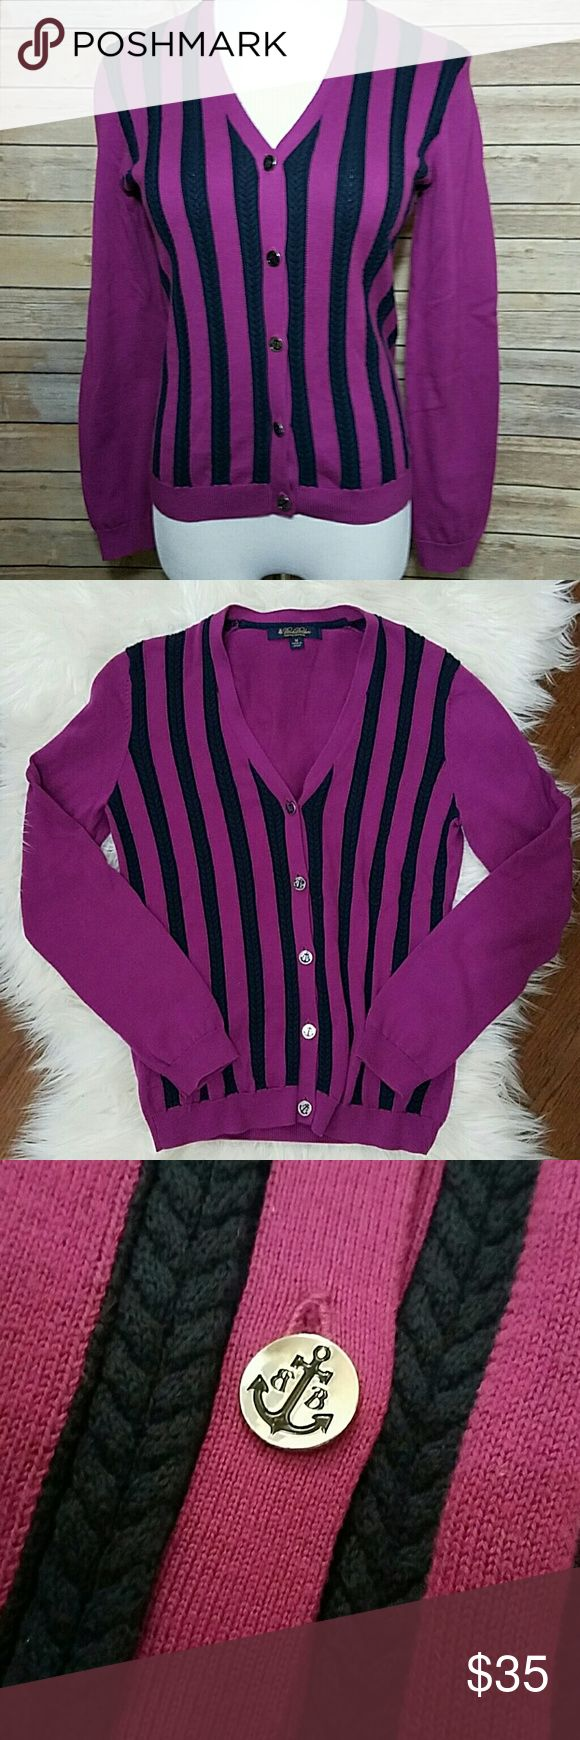 BROOKS BROTHERS Pink & Navy Cardigan BROOKS BROTHERS Pink & Navy Cardigan with Ancor Buttons. Excellent condition! Soft supima cotton.  Size M Brooks Brothers Sweaters Cardigans